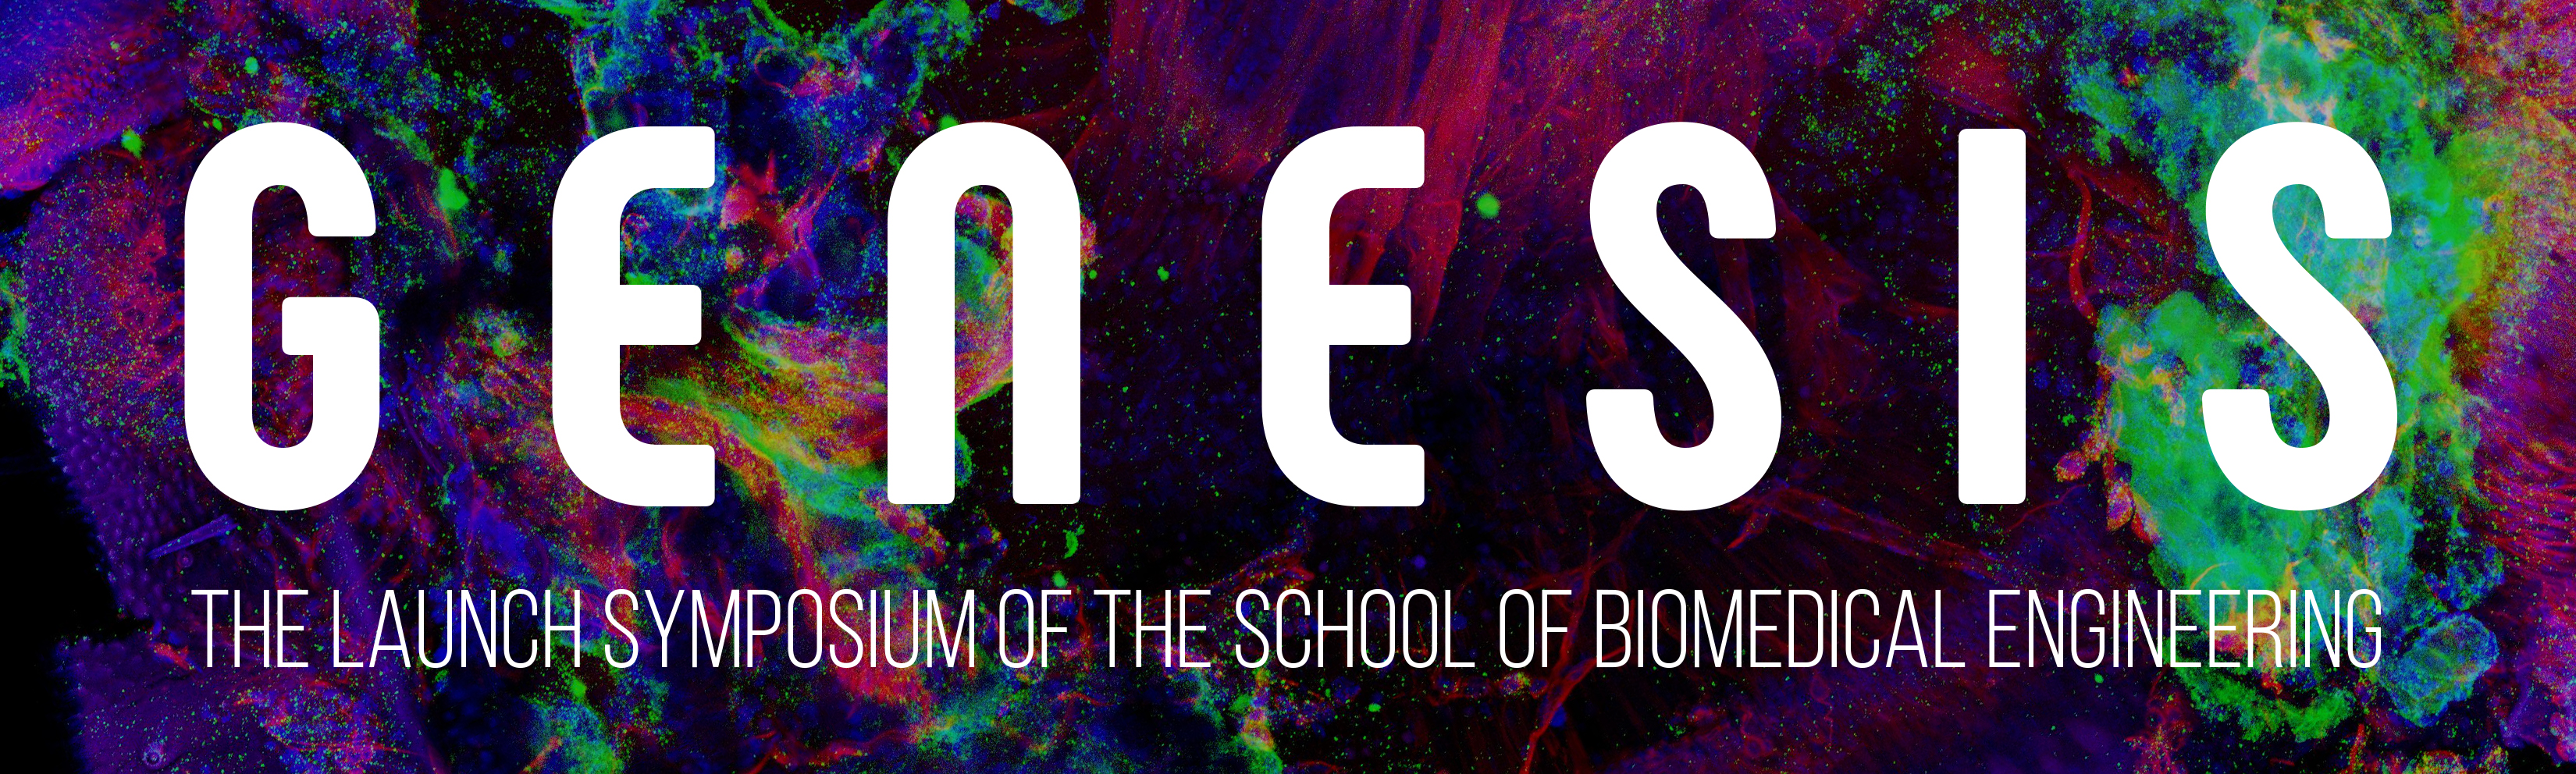 Genesis: The launch symposium of the School of Biomedical Engineering